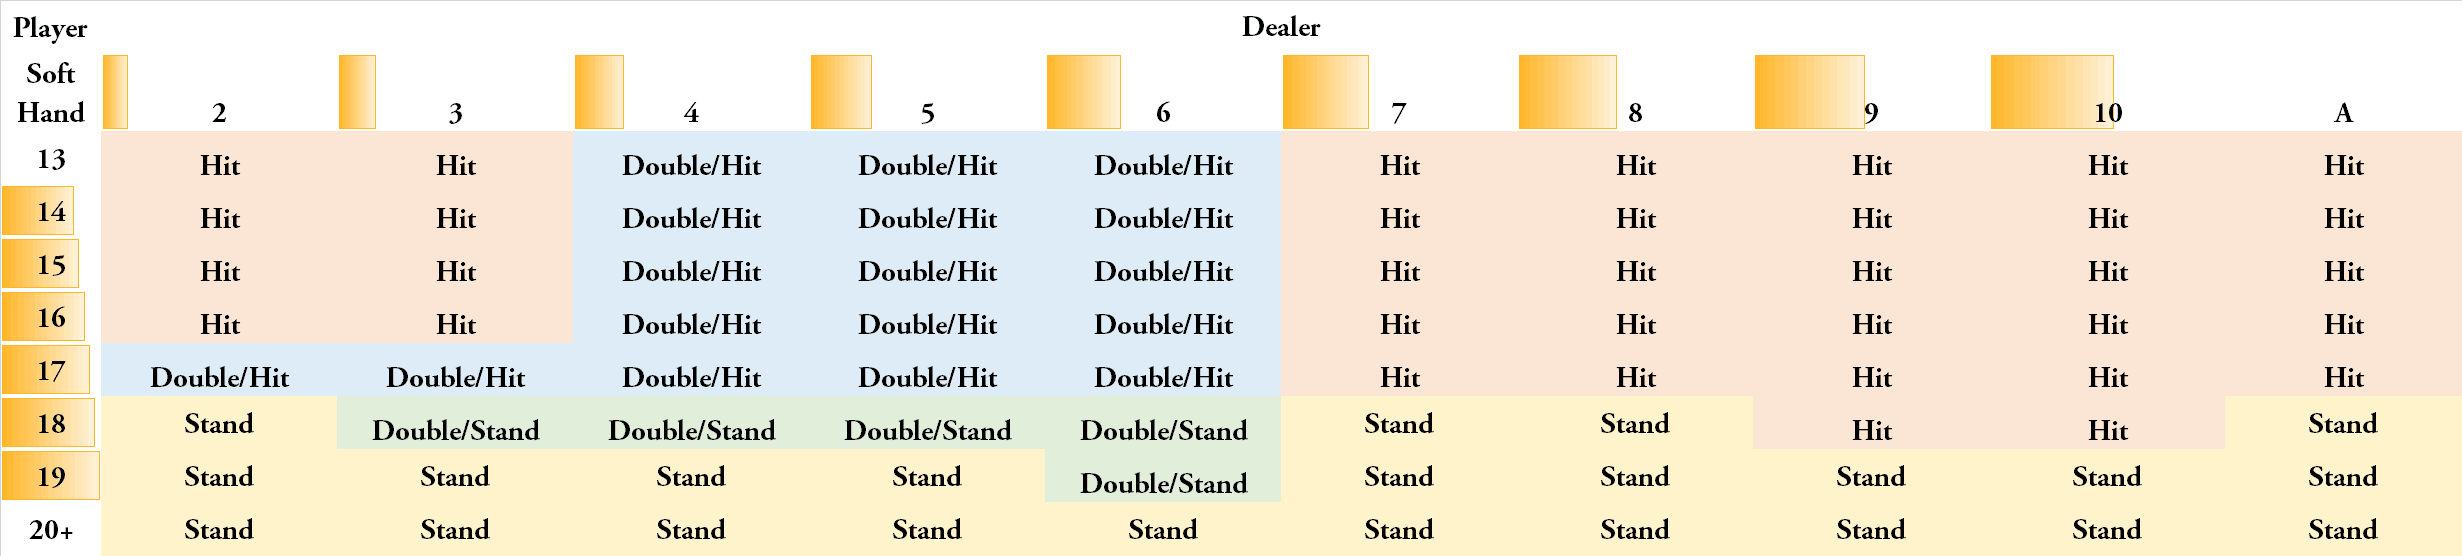 Single deck blackjack strategy table 3